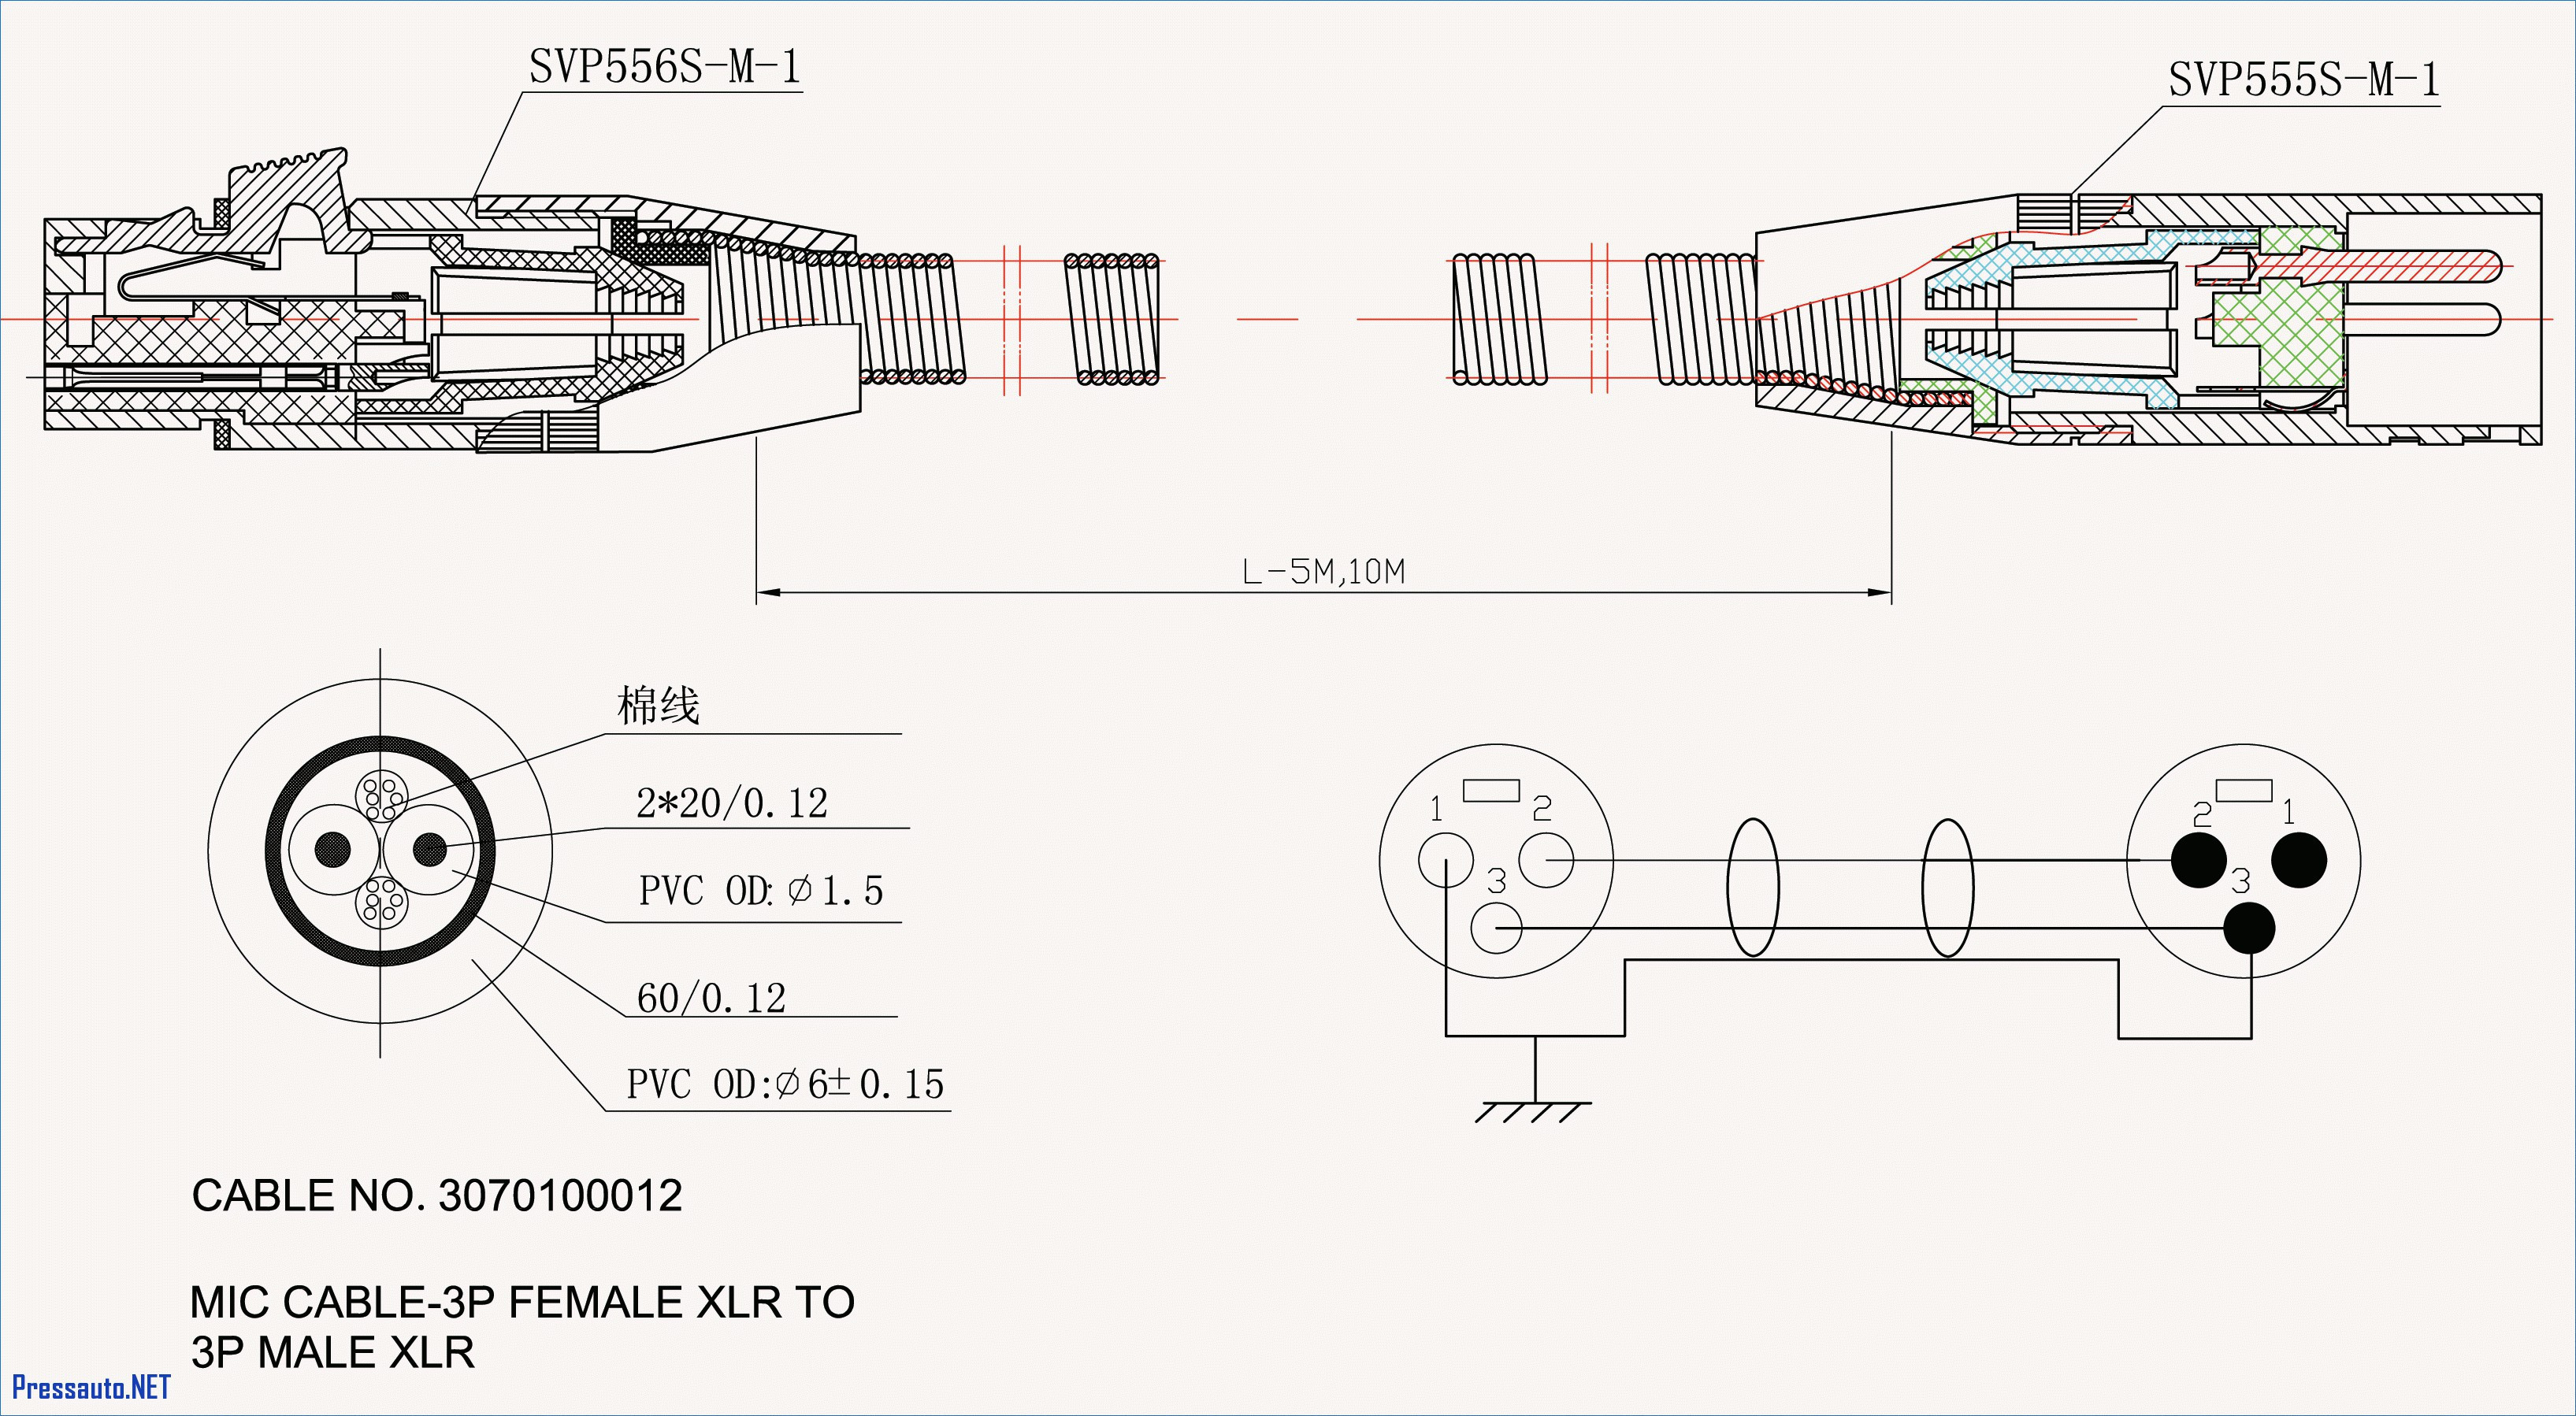 trailer plug wiring diagram 7 way electrical circuit australian rh trailer wiring diagram com 7 Prong Trailer Plug Wiring Diagram 4- Way Trailer Plug Wiring ...